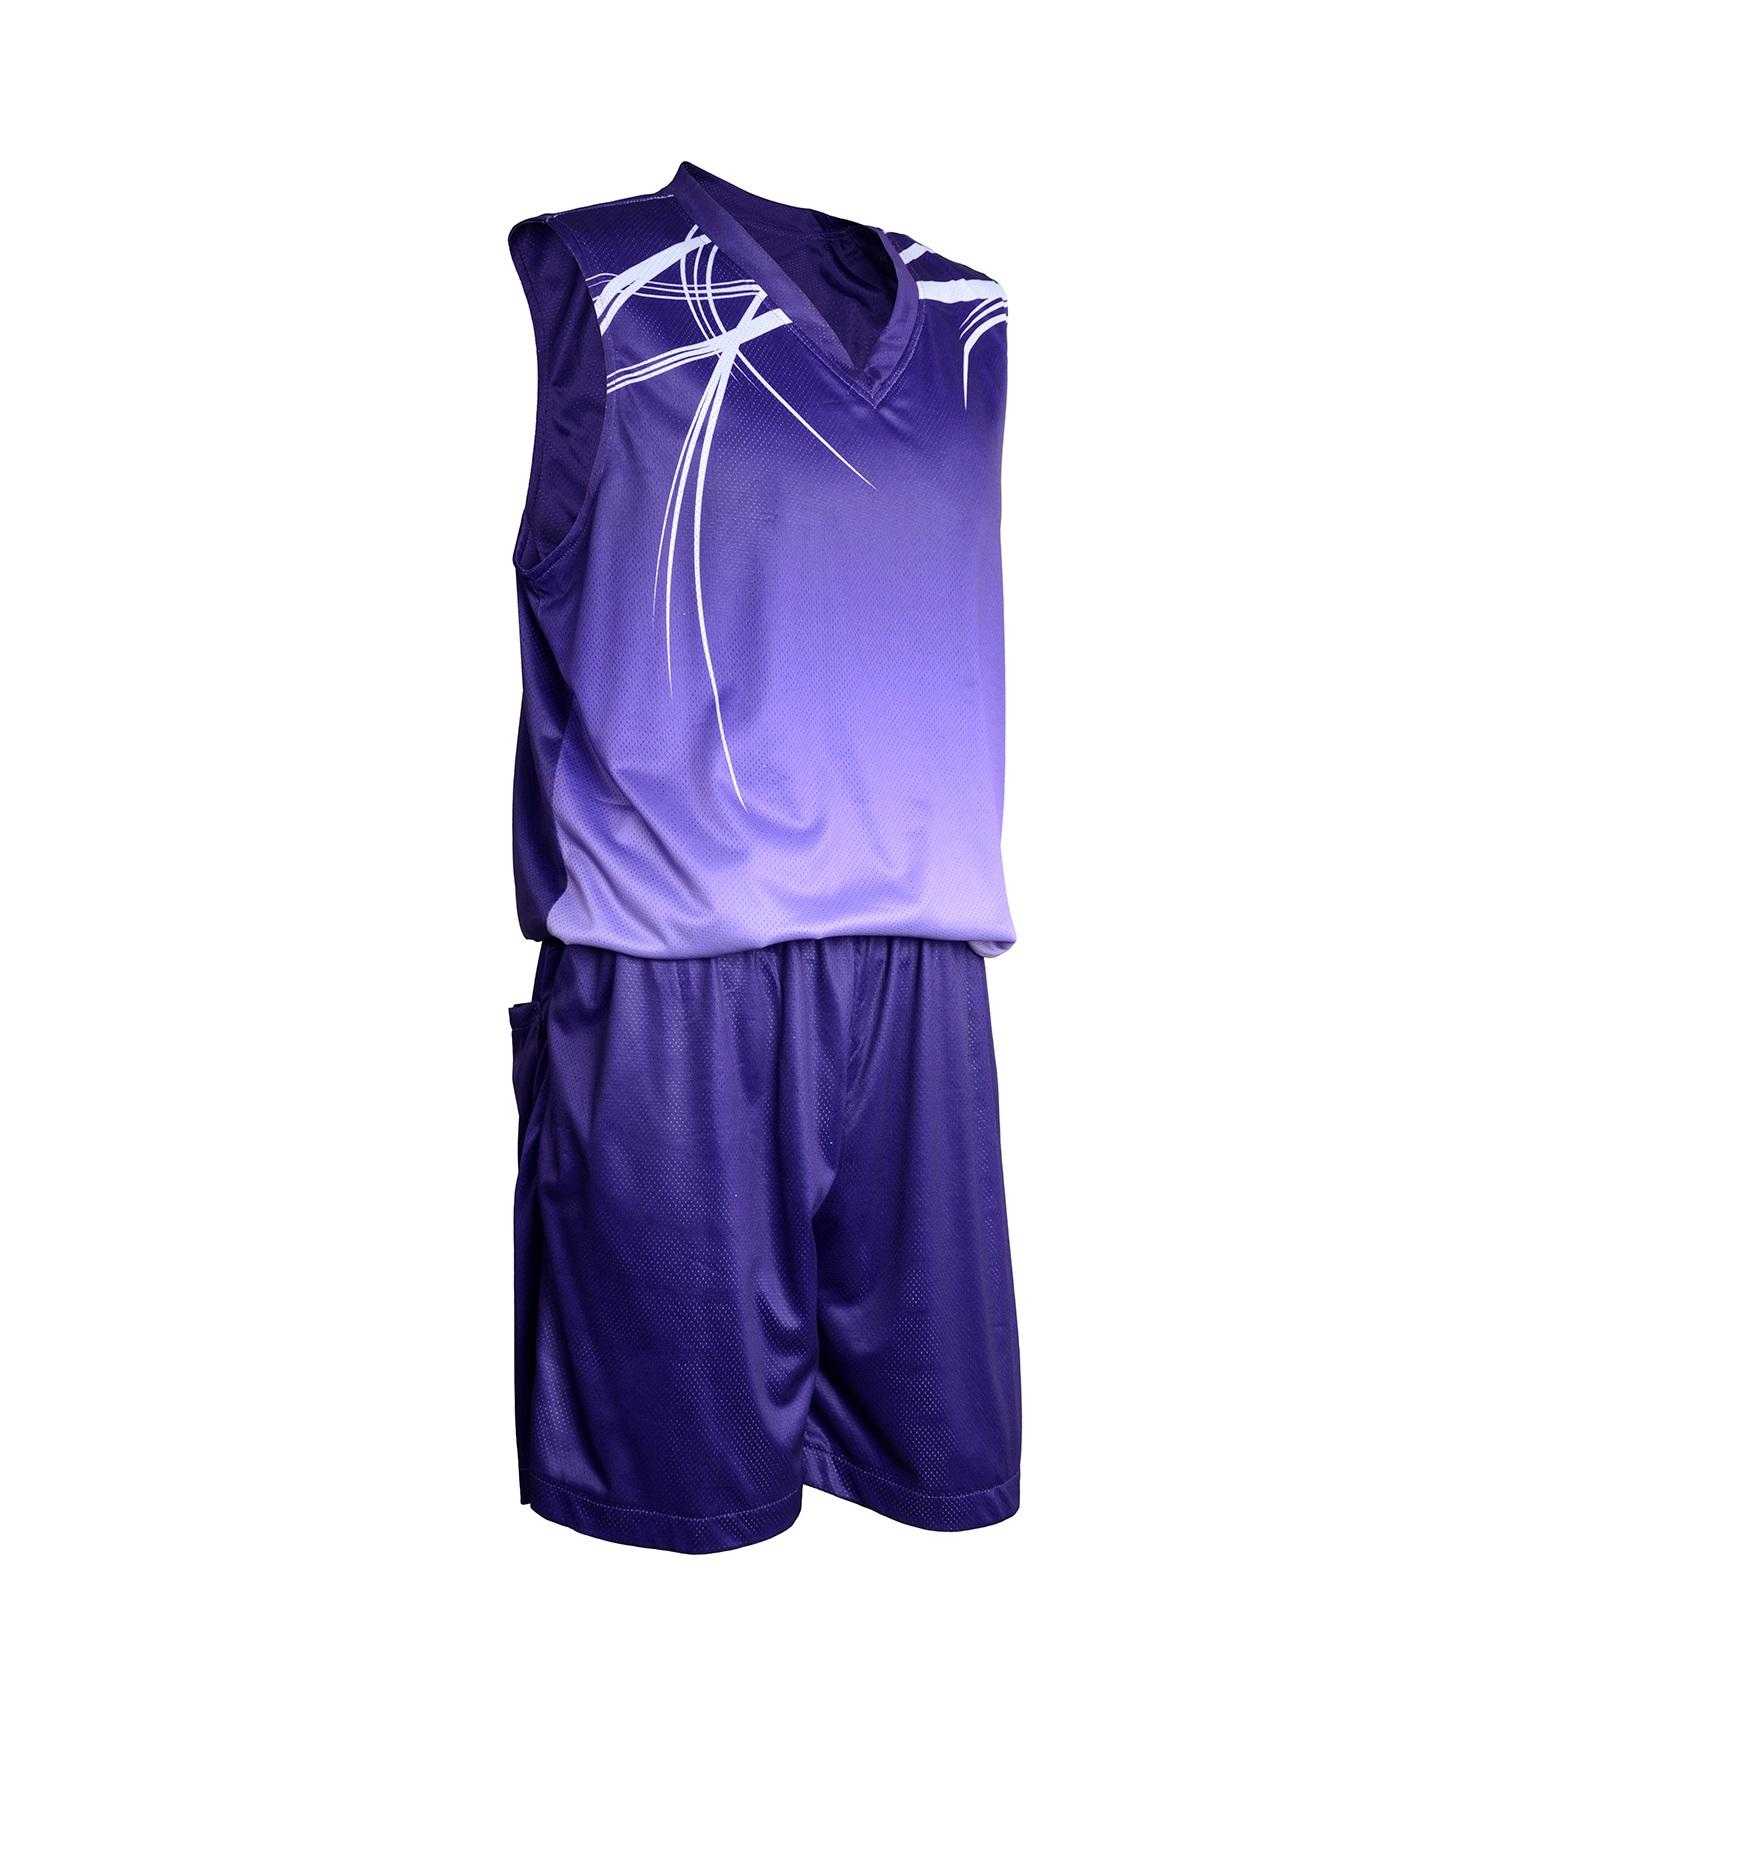 brand new 43e4e 19911 Reversible Basketball Jersey – 4 Colors